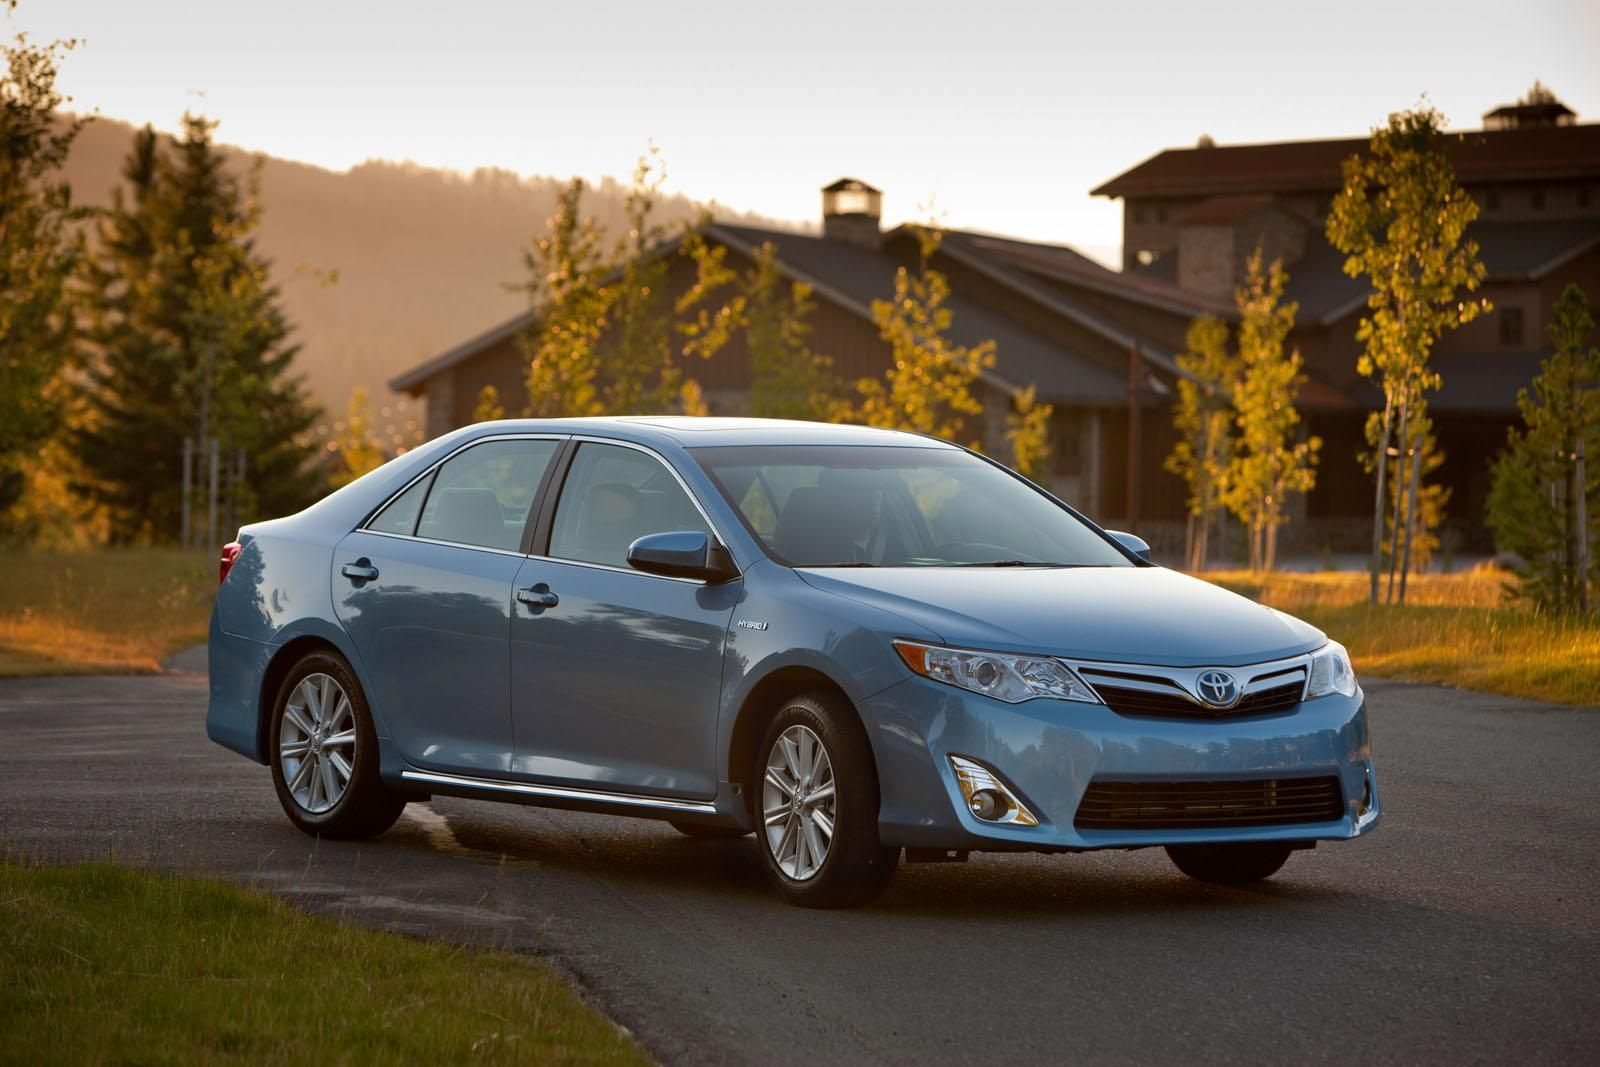 Awesome 2012 toyota camry photos 45